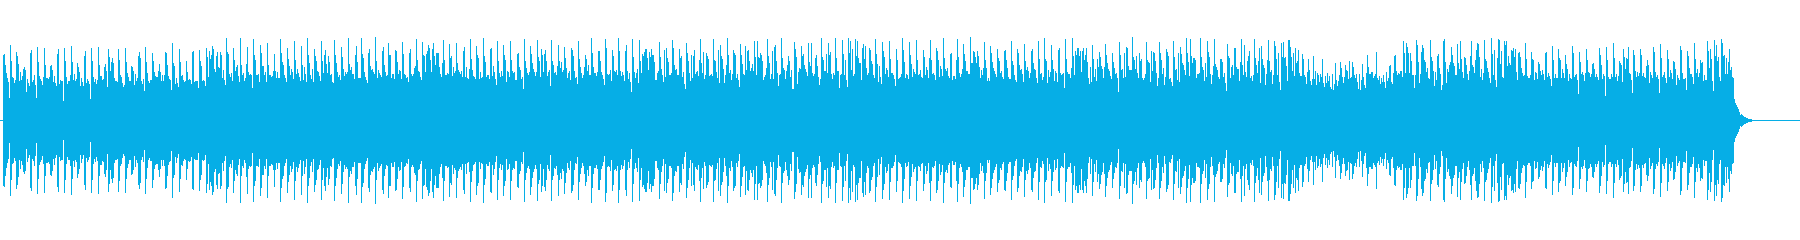 Fantastic and cute techno BGM's reproduced waveform